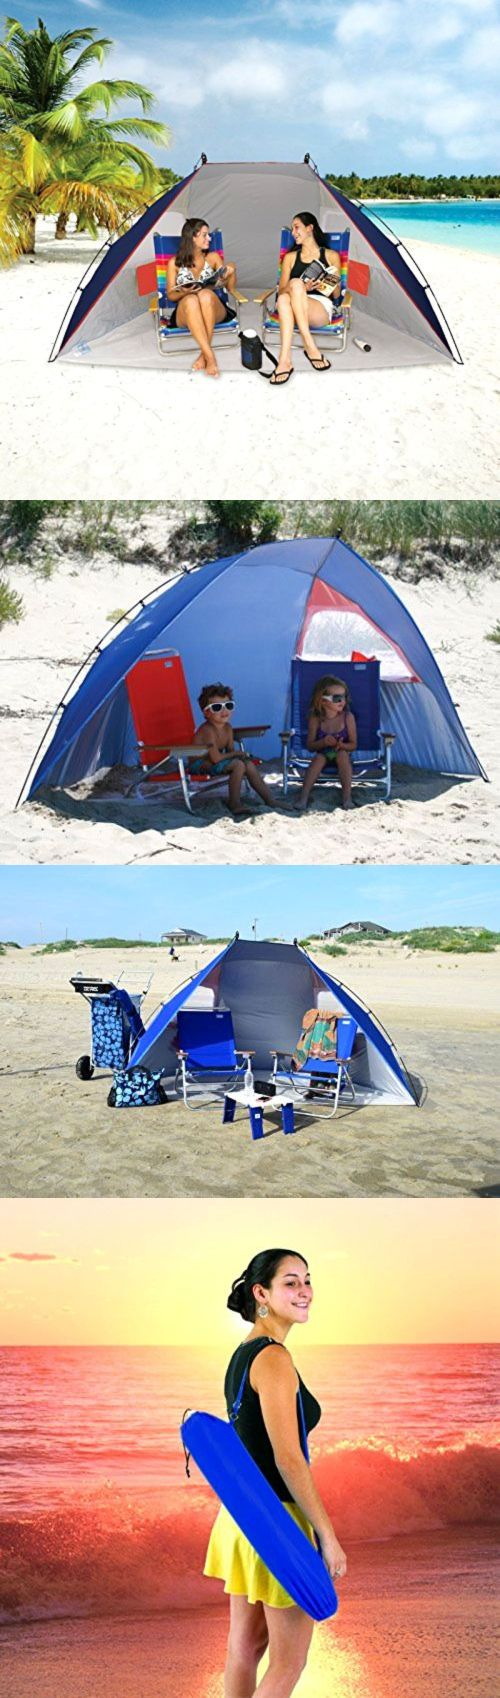 Canopies and Shelters 179011: Portable Sun Shelter Beach Umbrella Canopy Tent Sport Picnic Spf 50 Protection -> BUY IT NOW ONLY: $45.29 on eBay!